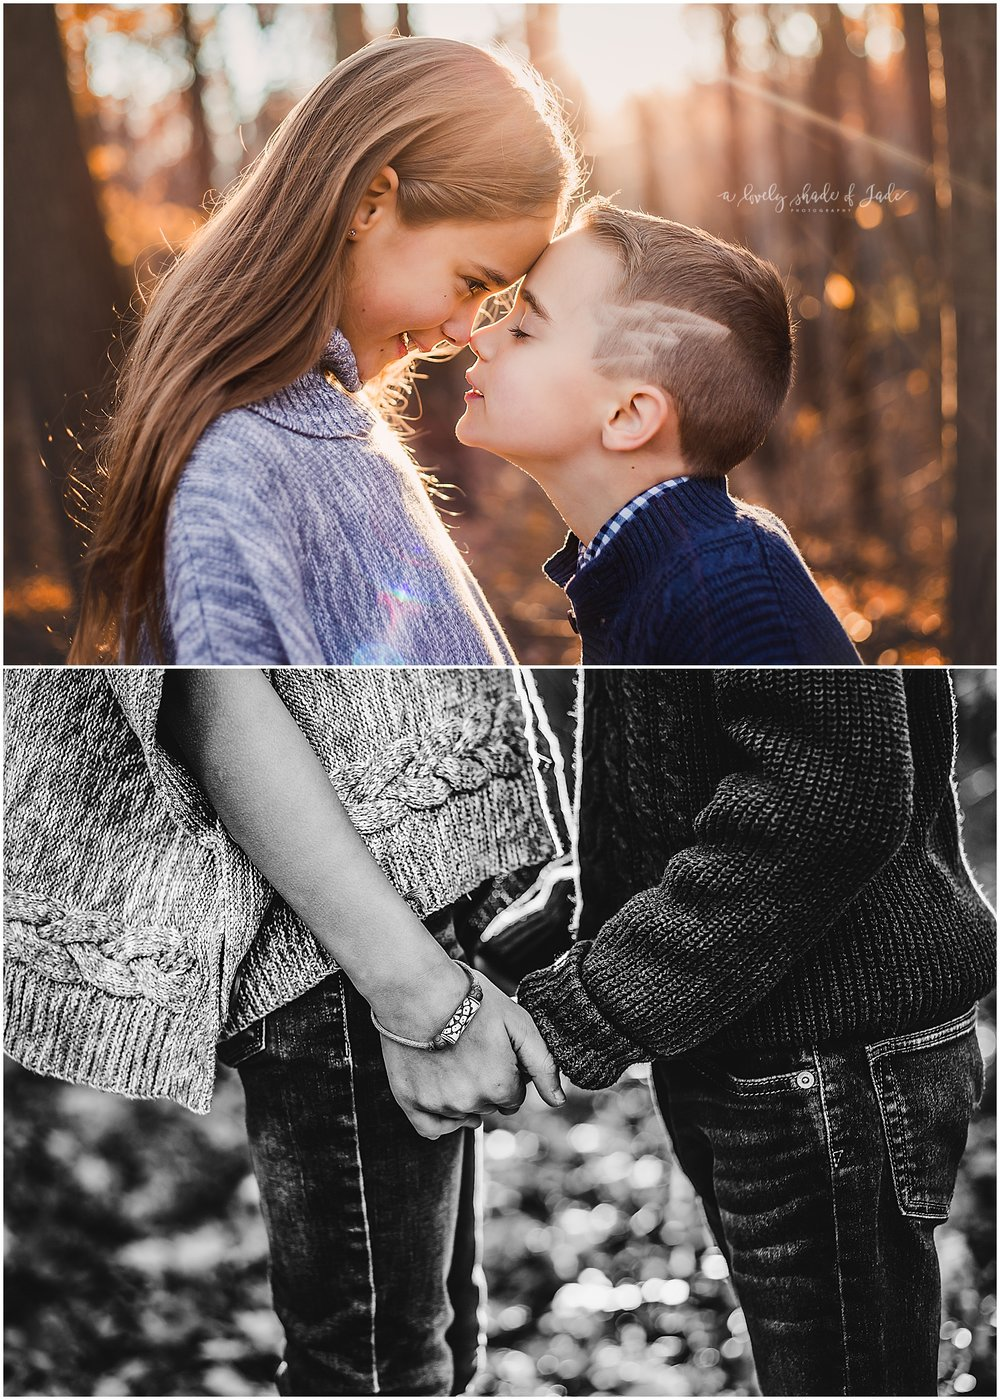 Fall_Sibling_Session_Morristown_NJ_Photographer_0001.jpg